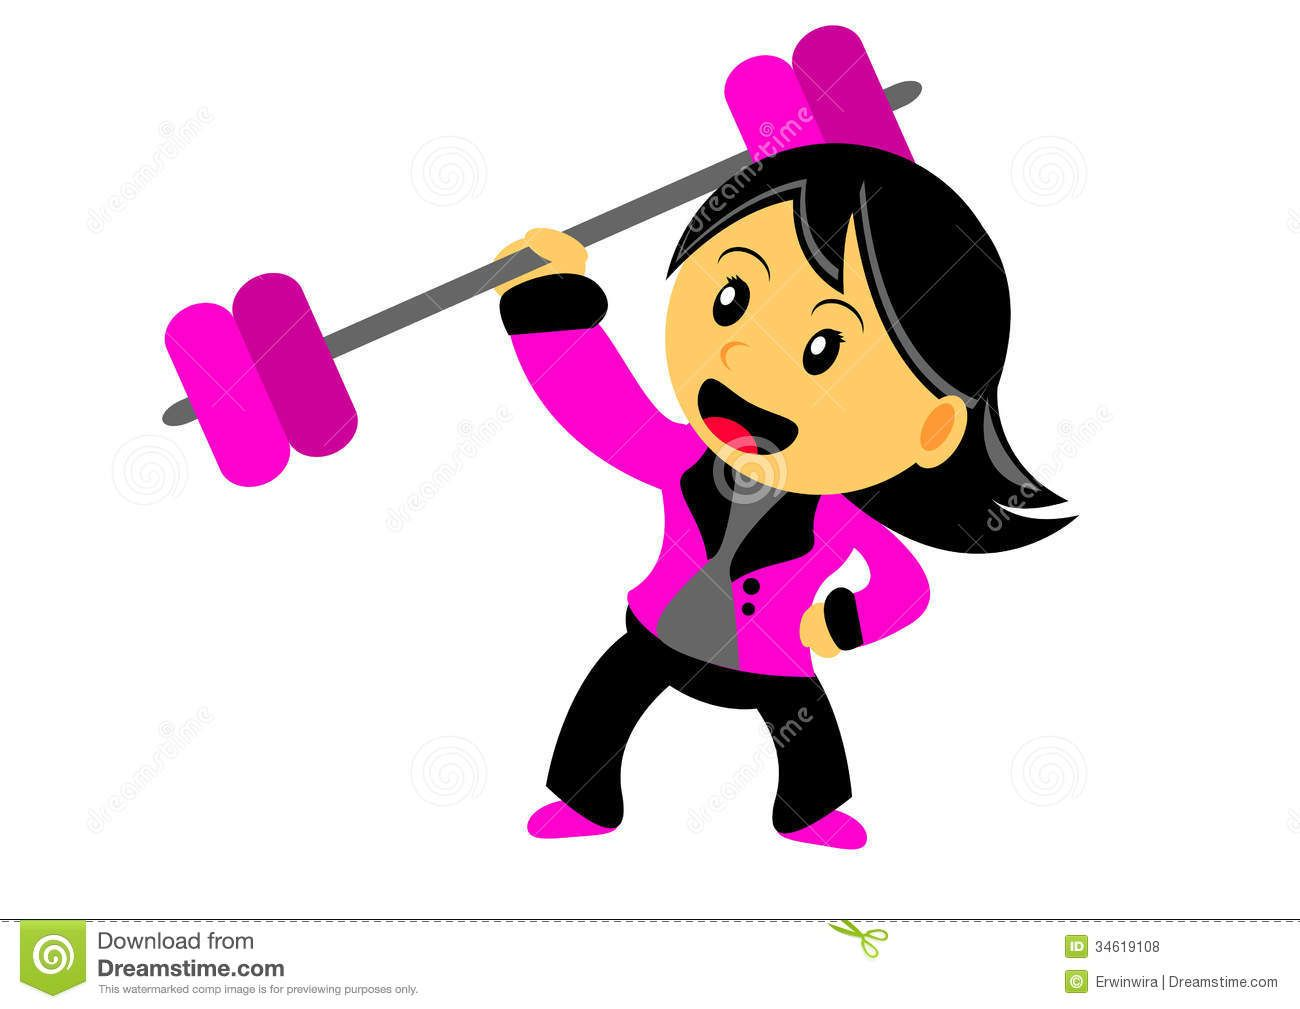 Strong girl clipart clipart strong+woman+clipart | Clip art | Strong women, Clip art, Strong clipart